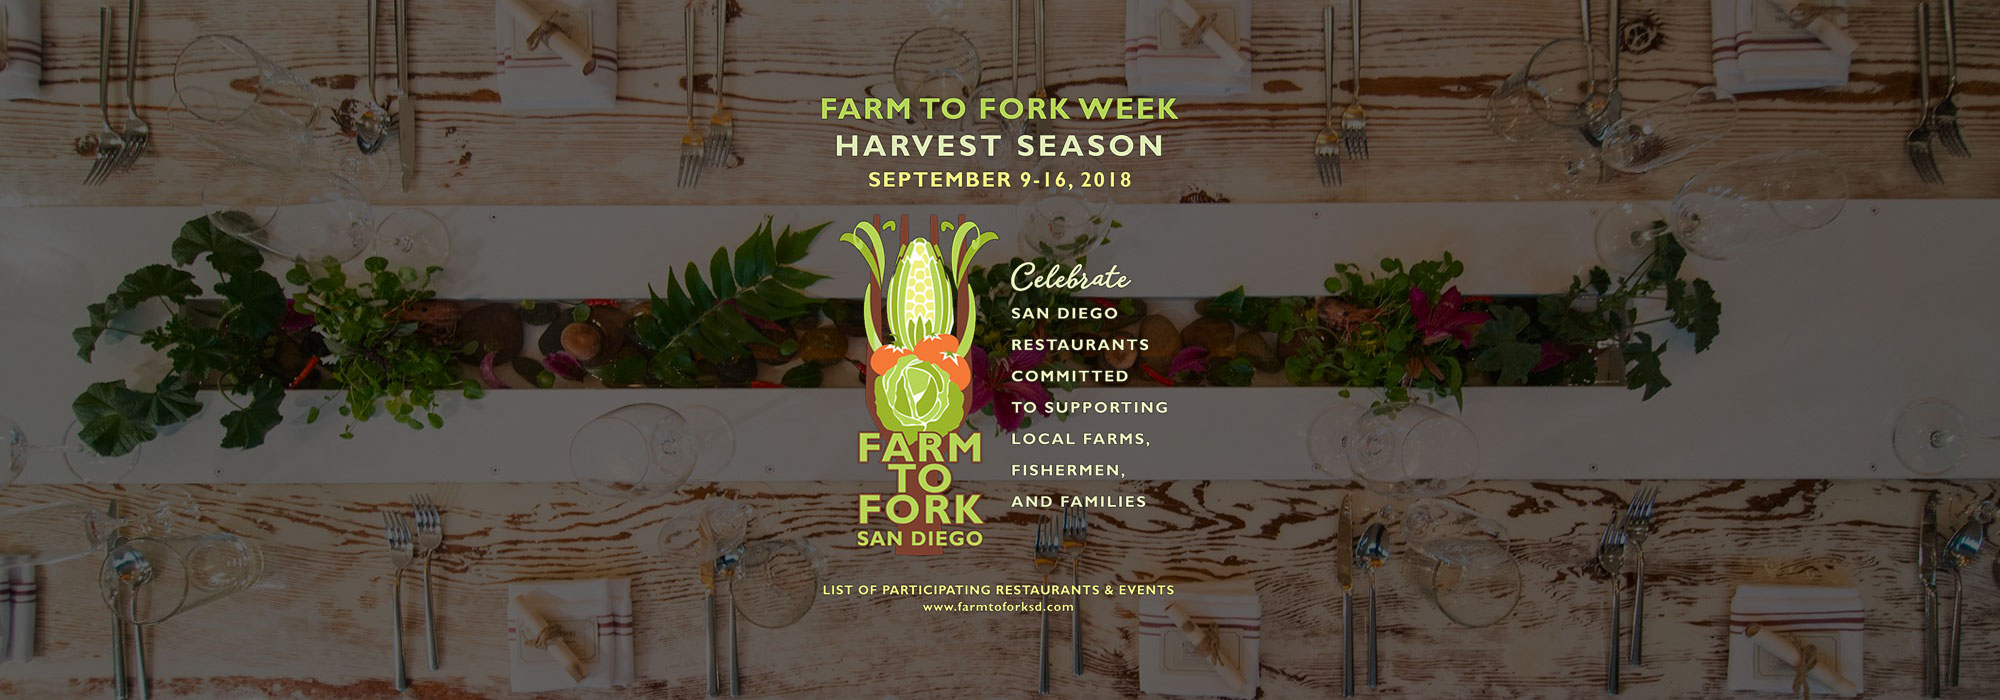 Farm to Fork Week: Harvest Season | September 9-16,2018. Celebrate San Diego Restaurants committed to supporting local farms, fishermen and families. Visit farmtoforksd.com for more information.